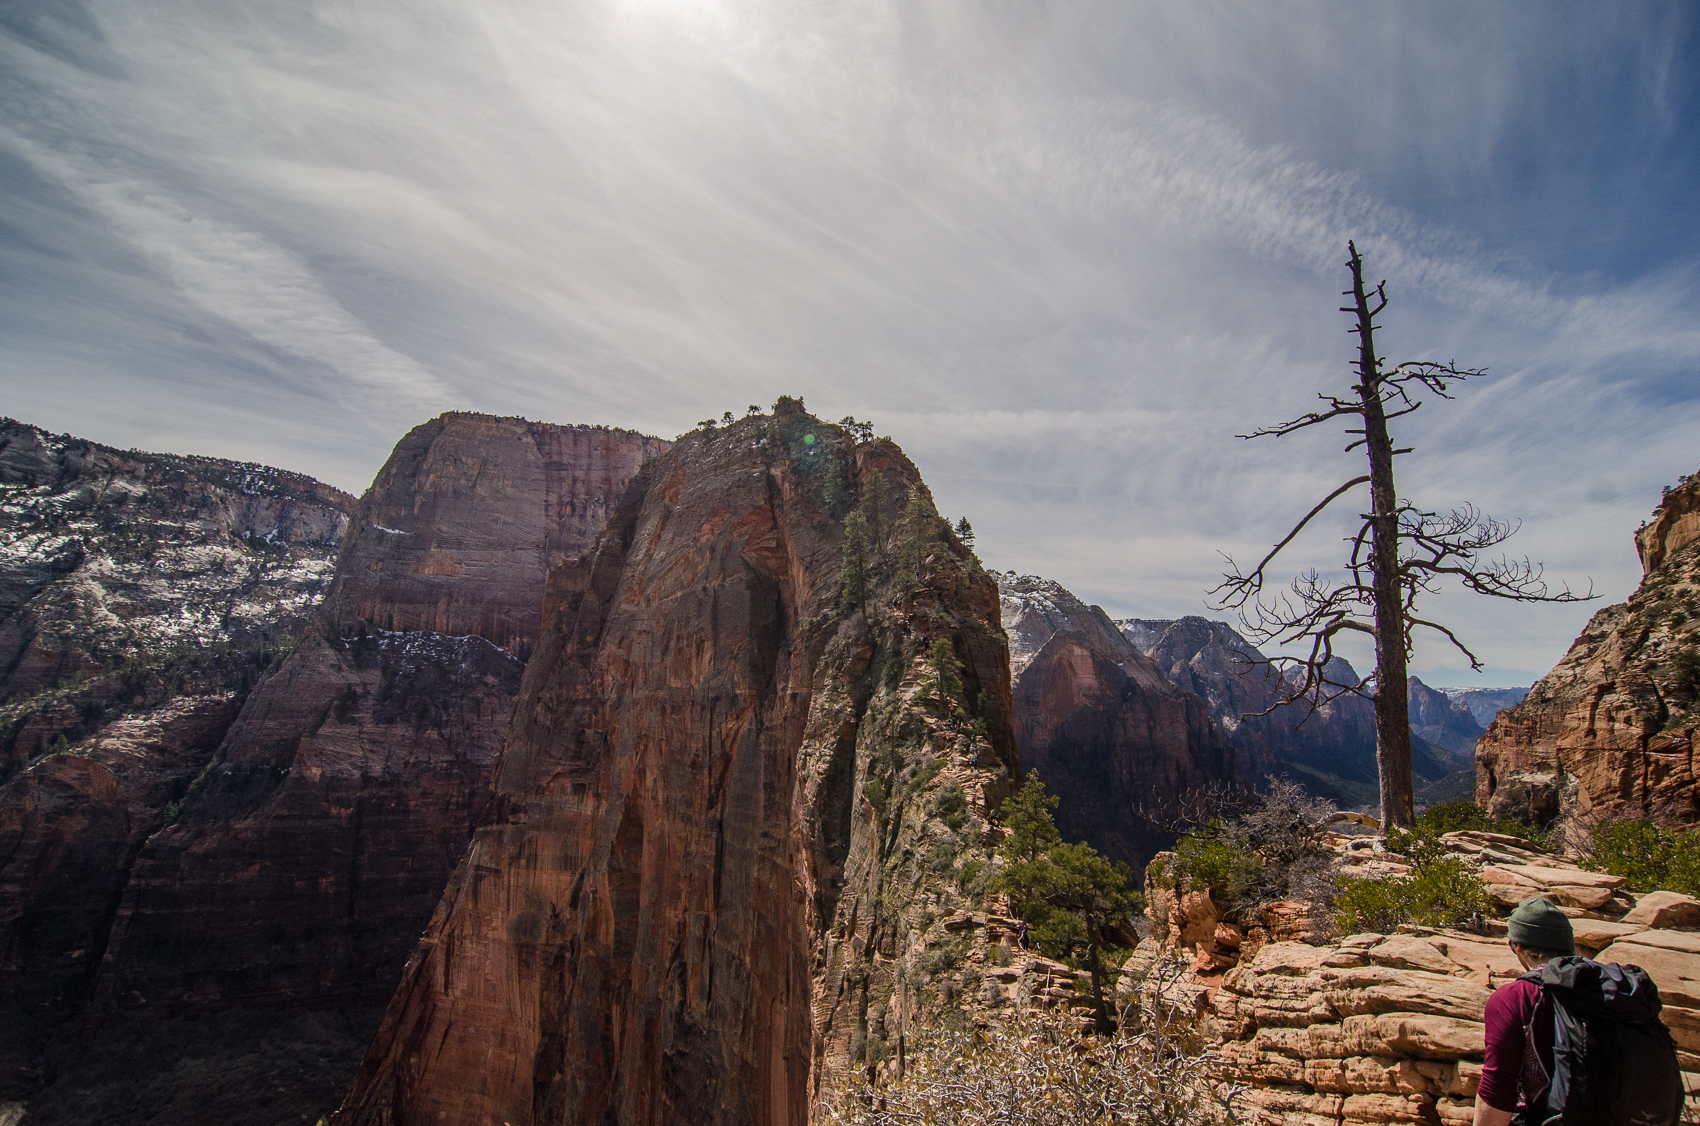 The insanity of Angel's Landing…. Wayyyyy too many people.